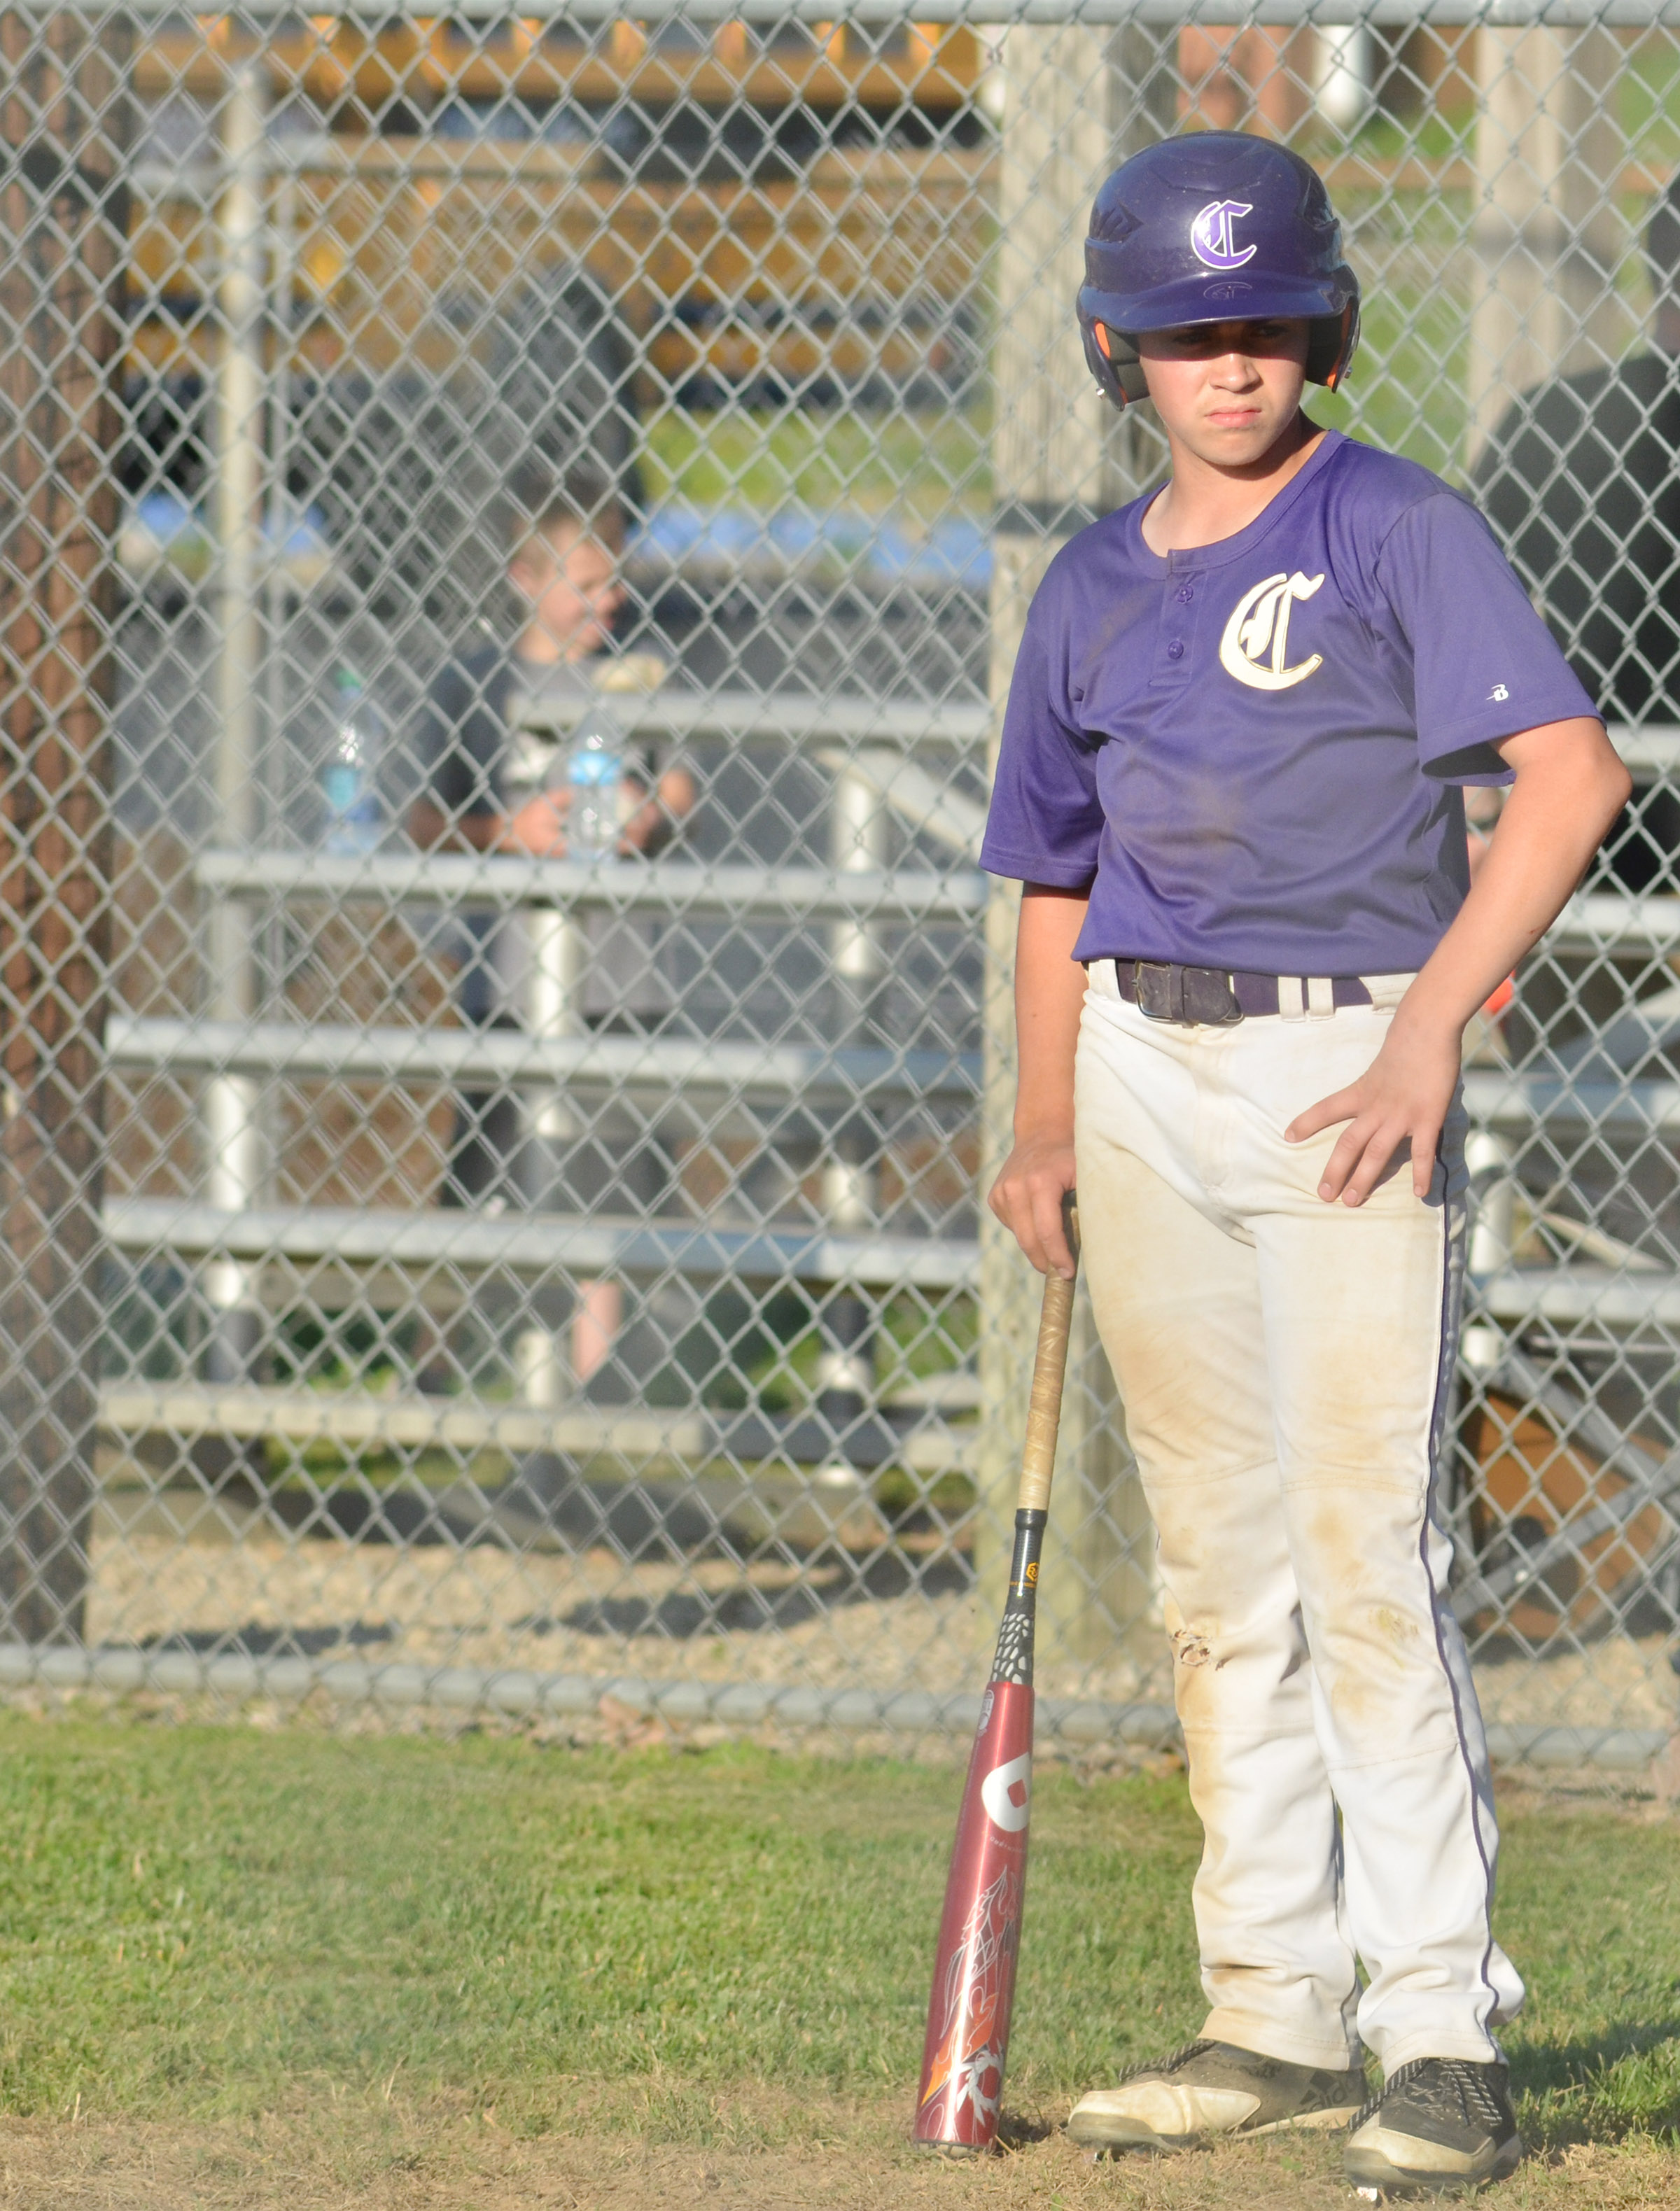 CMS eighth-grader Clark Kidwell waits to bat.